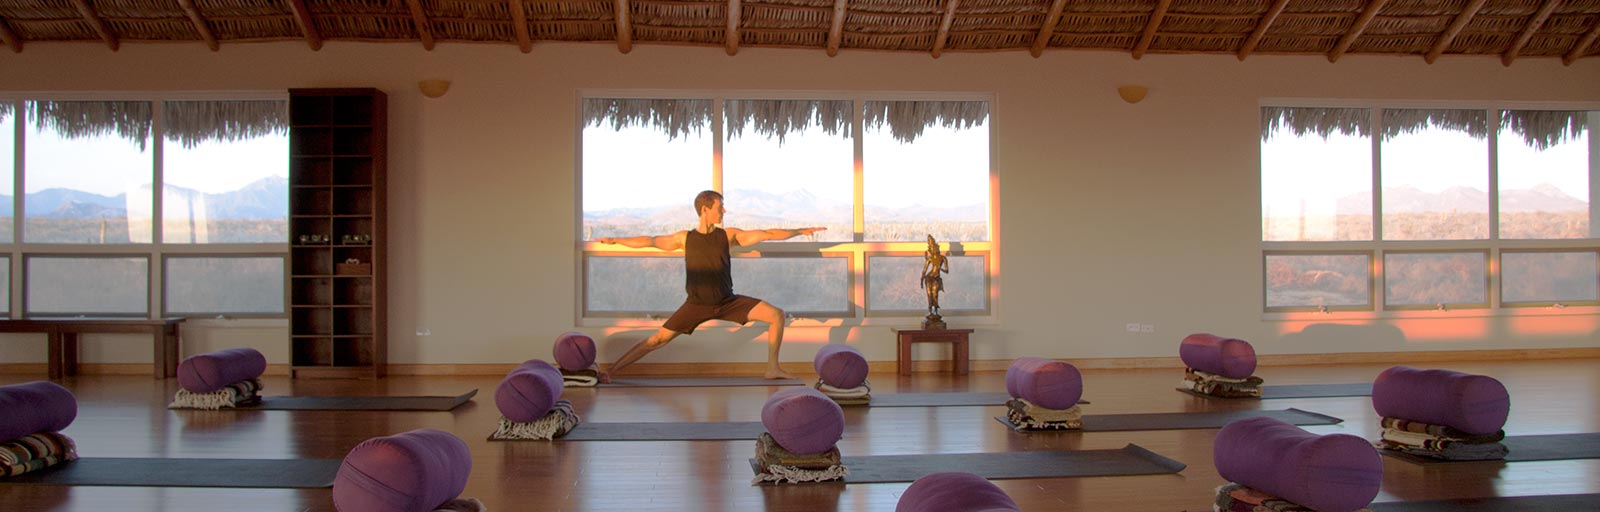 Best Yoga Retreats in Mexico: Deepen Your Yoga Practice on a Yoga Retreat